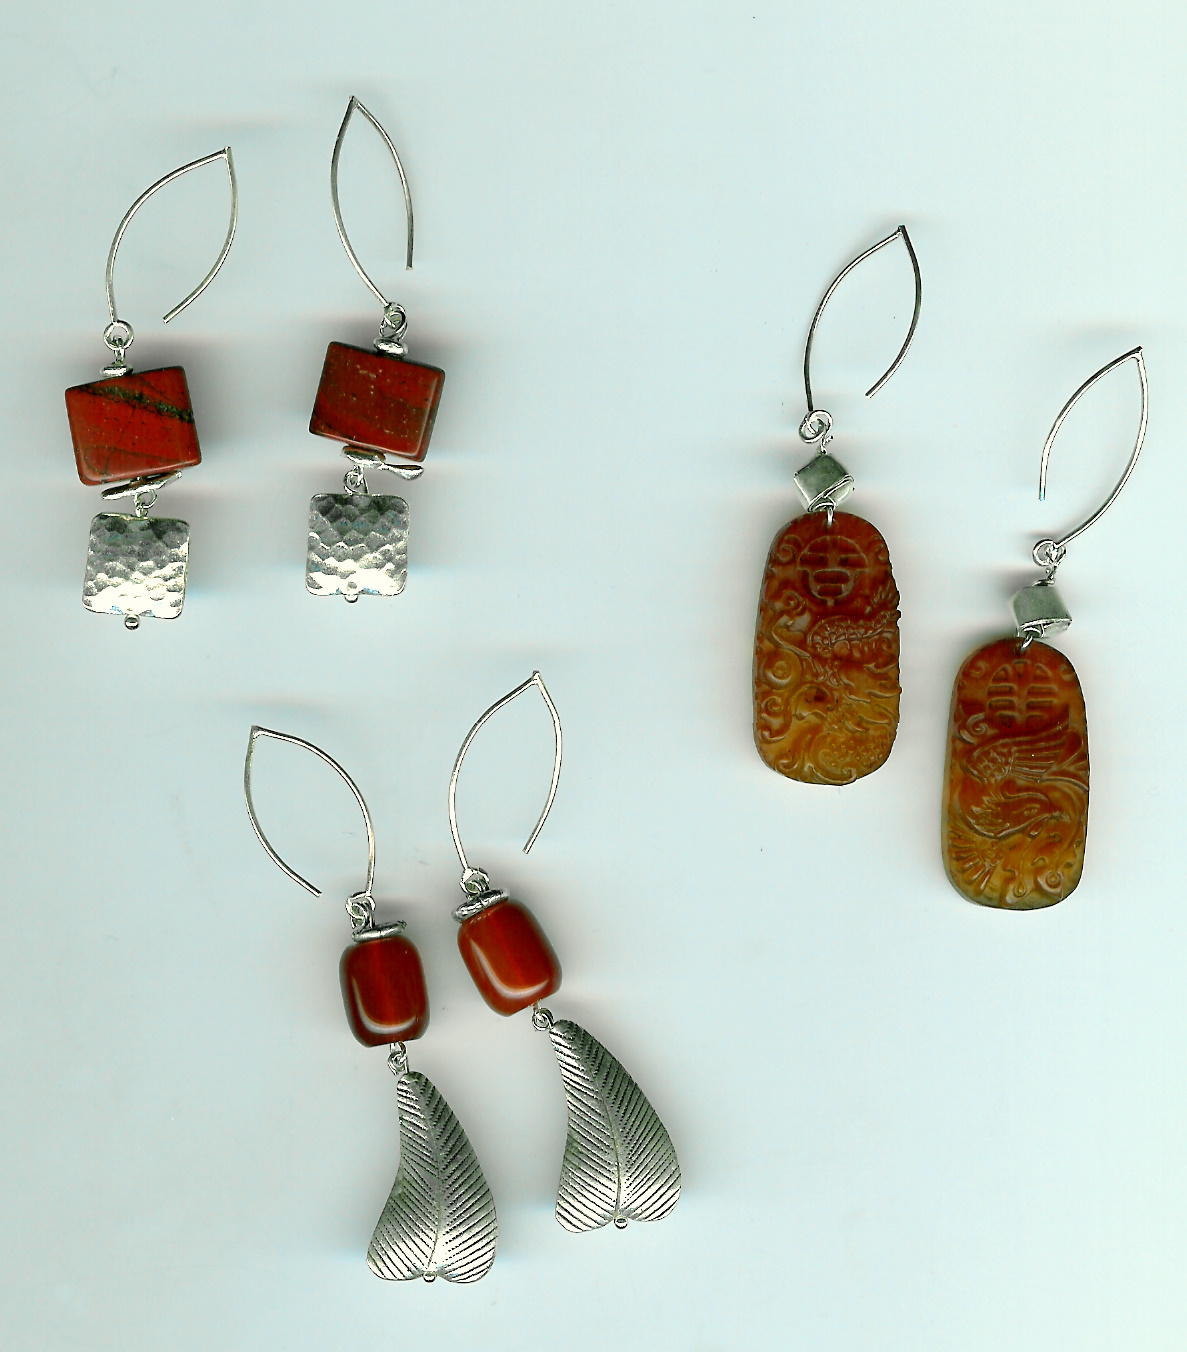 225. Semi-precious stones and Thai Sterling SIlver